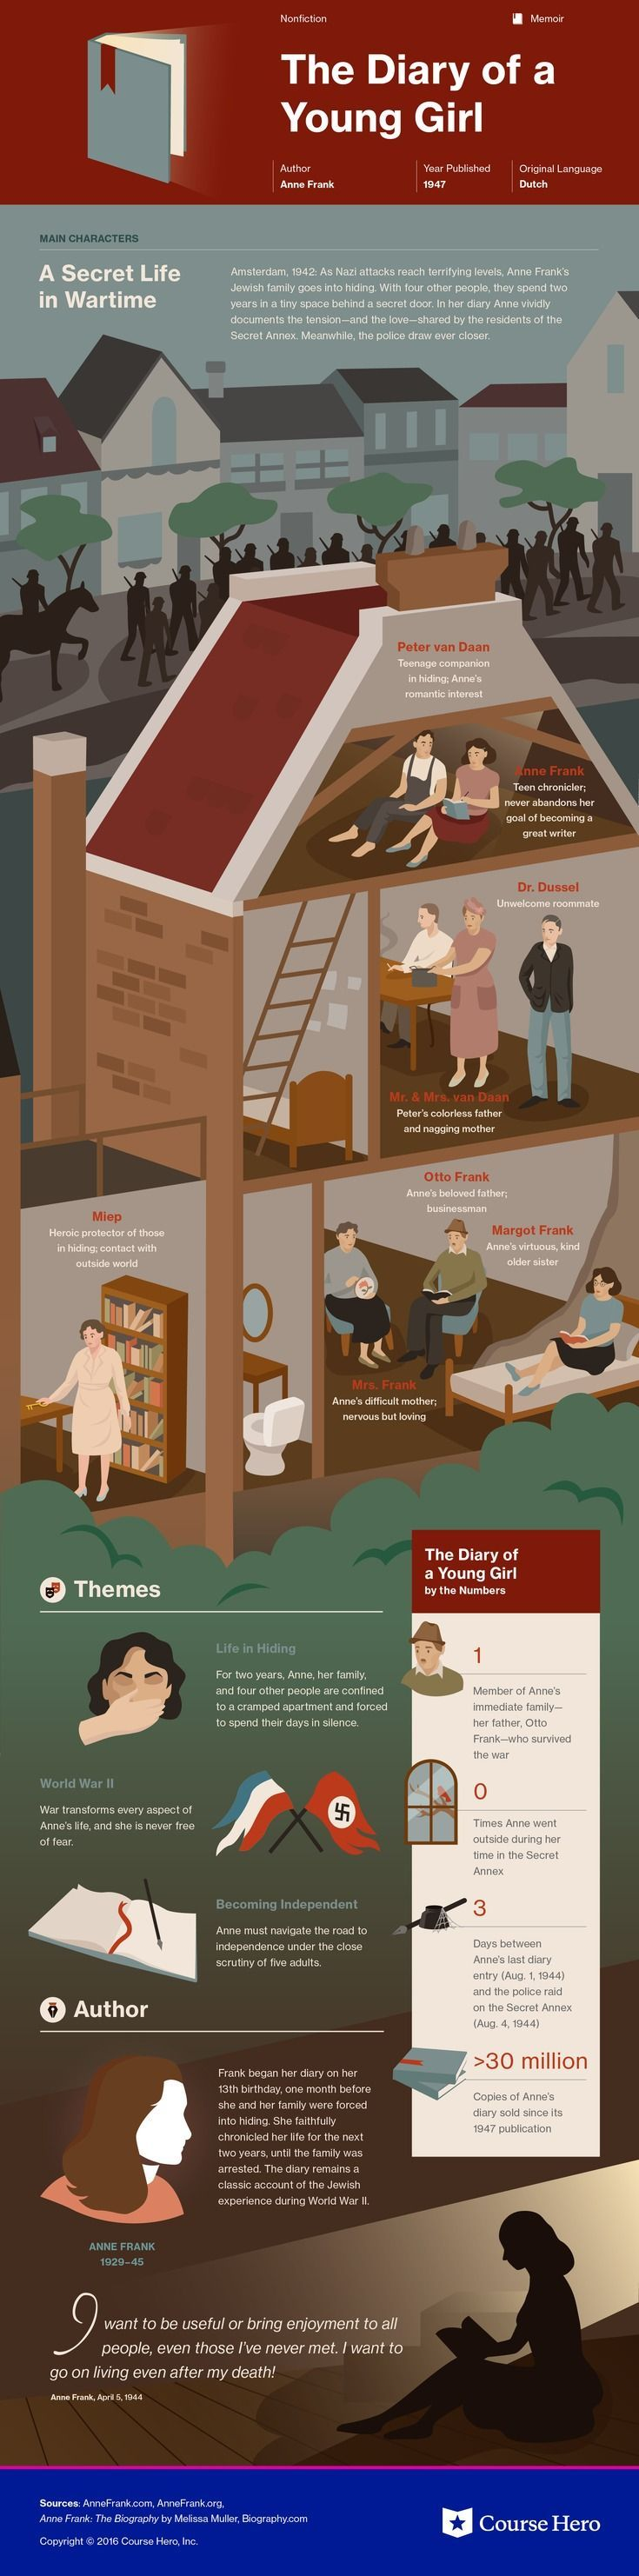 The Diary of a Young Girl Infographic | Course Hero